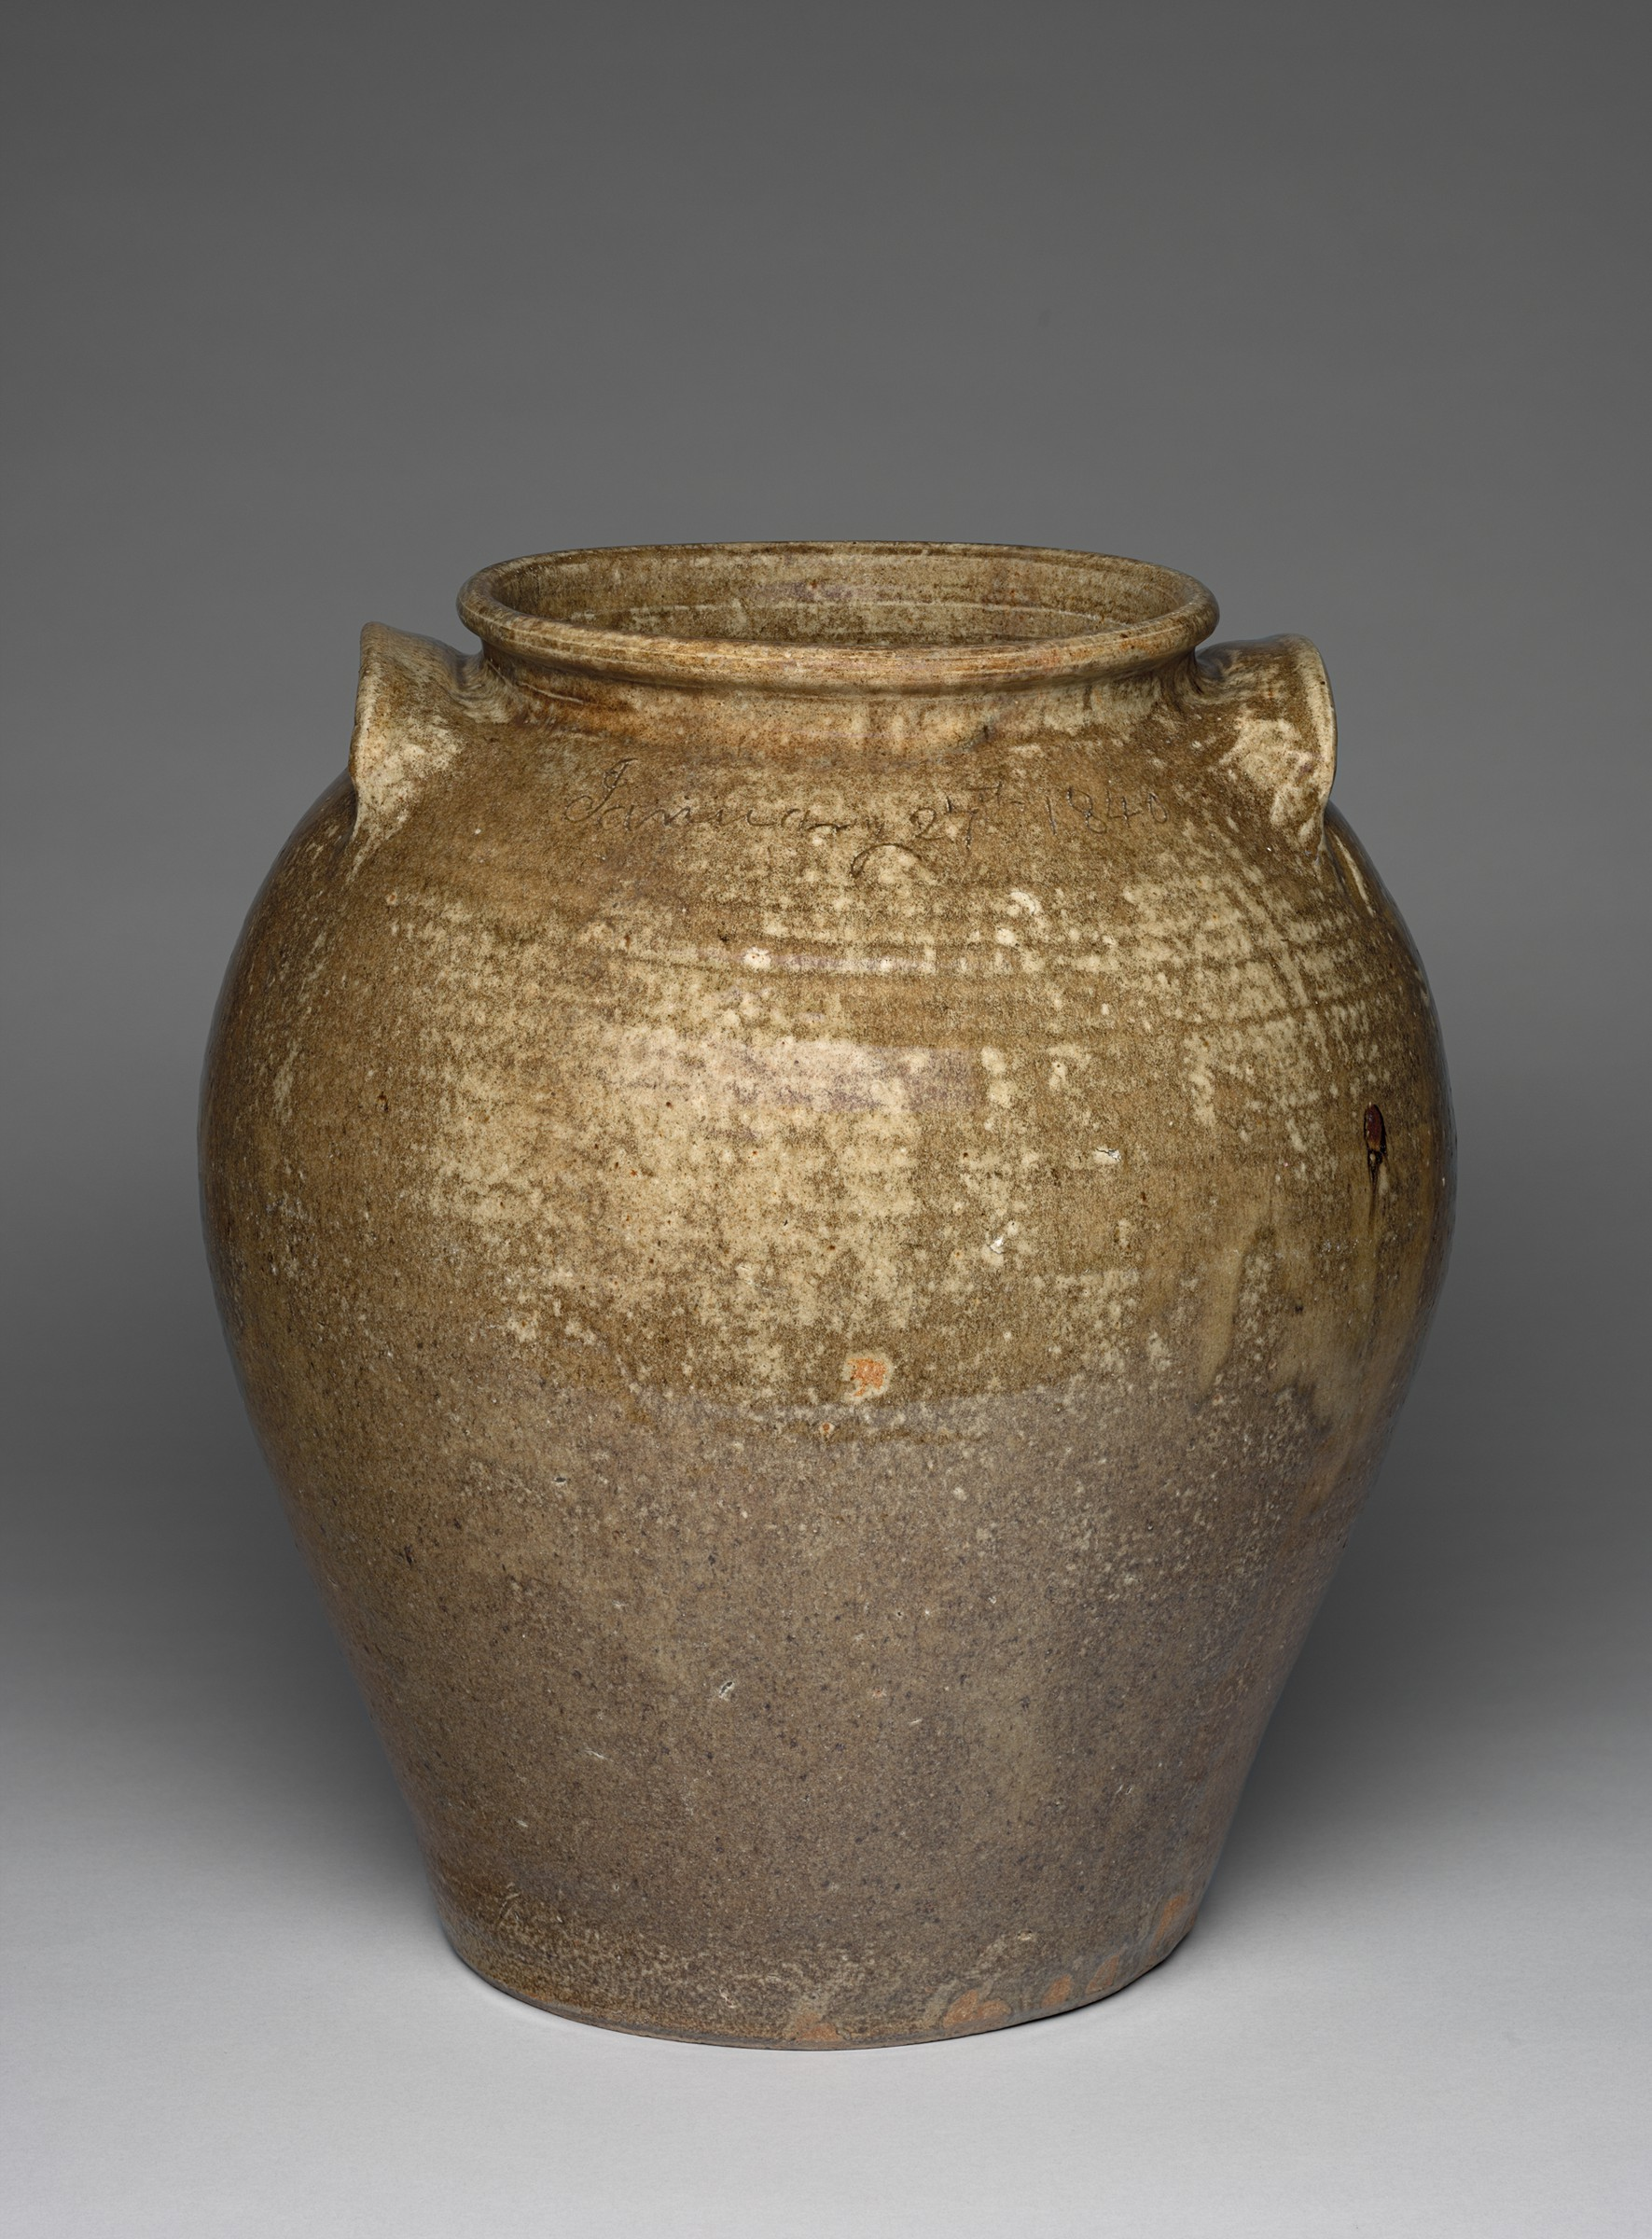 This brown and  tan ceramic jar has two handles and is shown against a gray background. The surface is worn in many places and chipped in others, revealing  the reddish hue of the clay  and horizontal striations.  The mouth and base are approximately the same diameter, while the body of the jug  is broader.